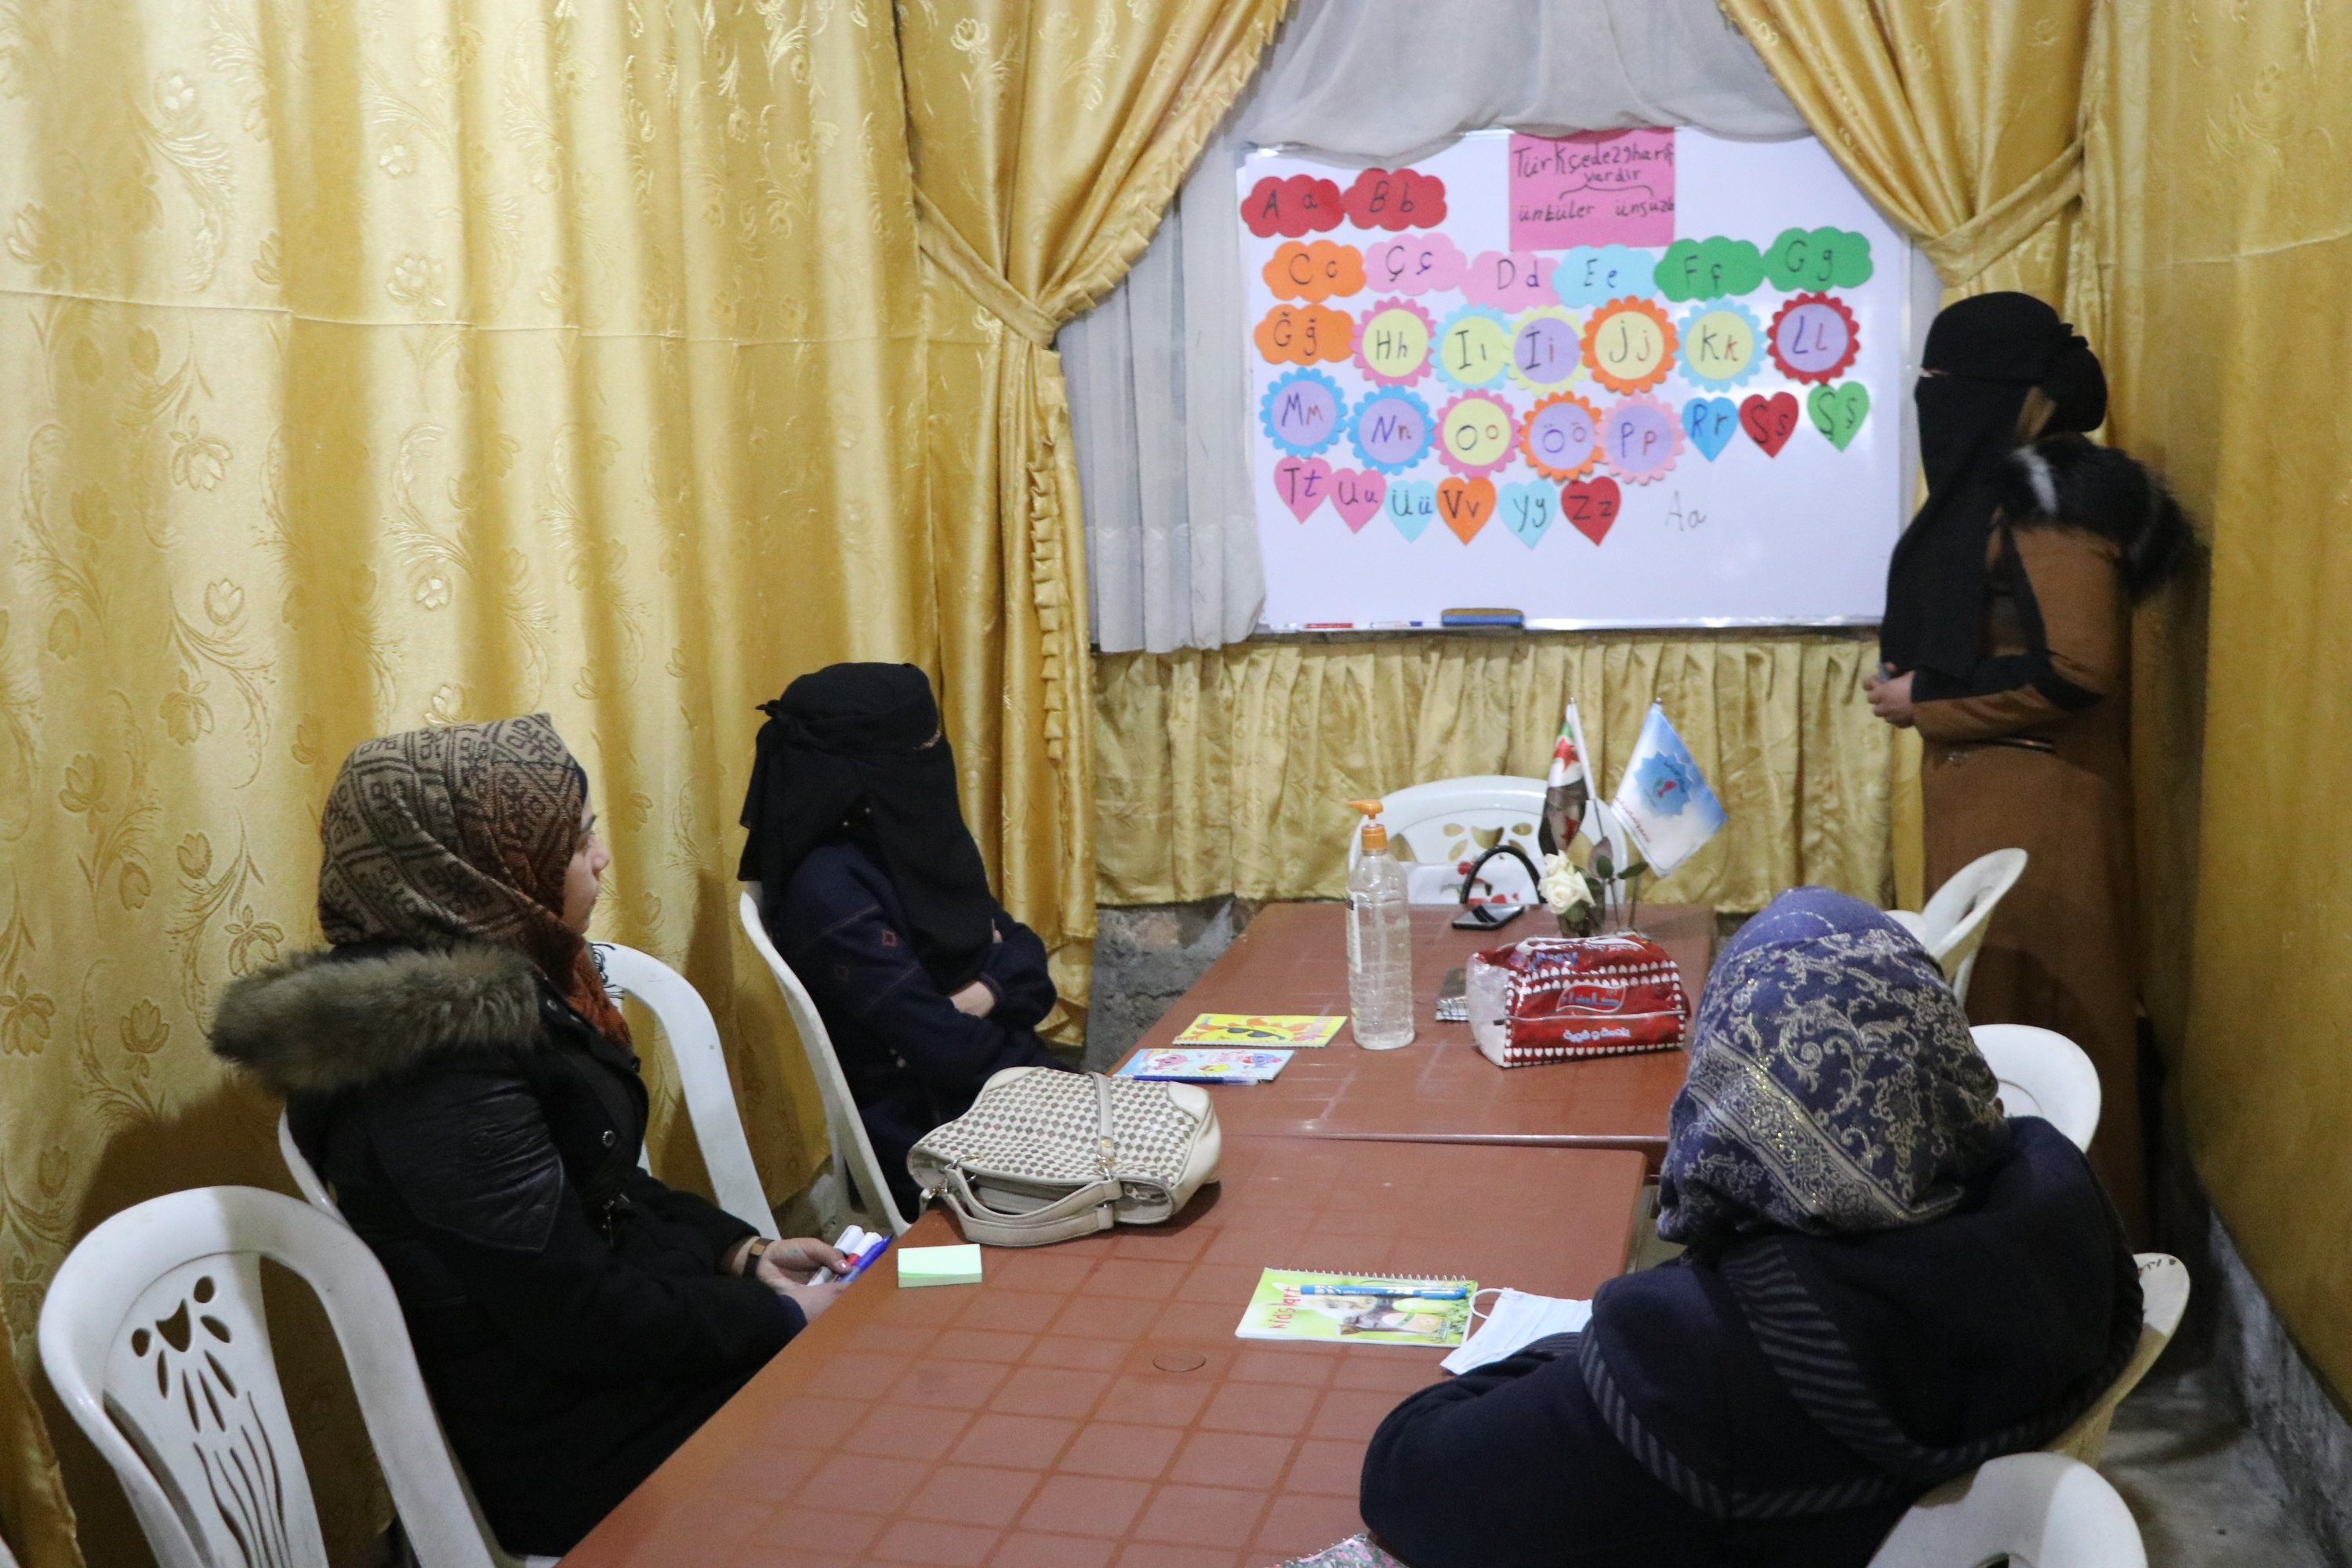 Syrian women receive Turkish lessons in the Al-Irade Course Center in Idlib, Syria, Jan. 14, 2021. (IHA)